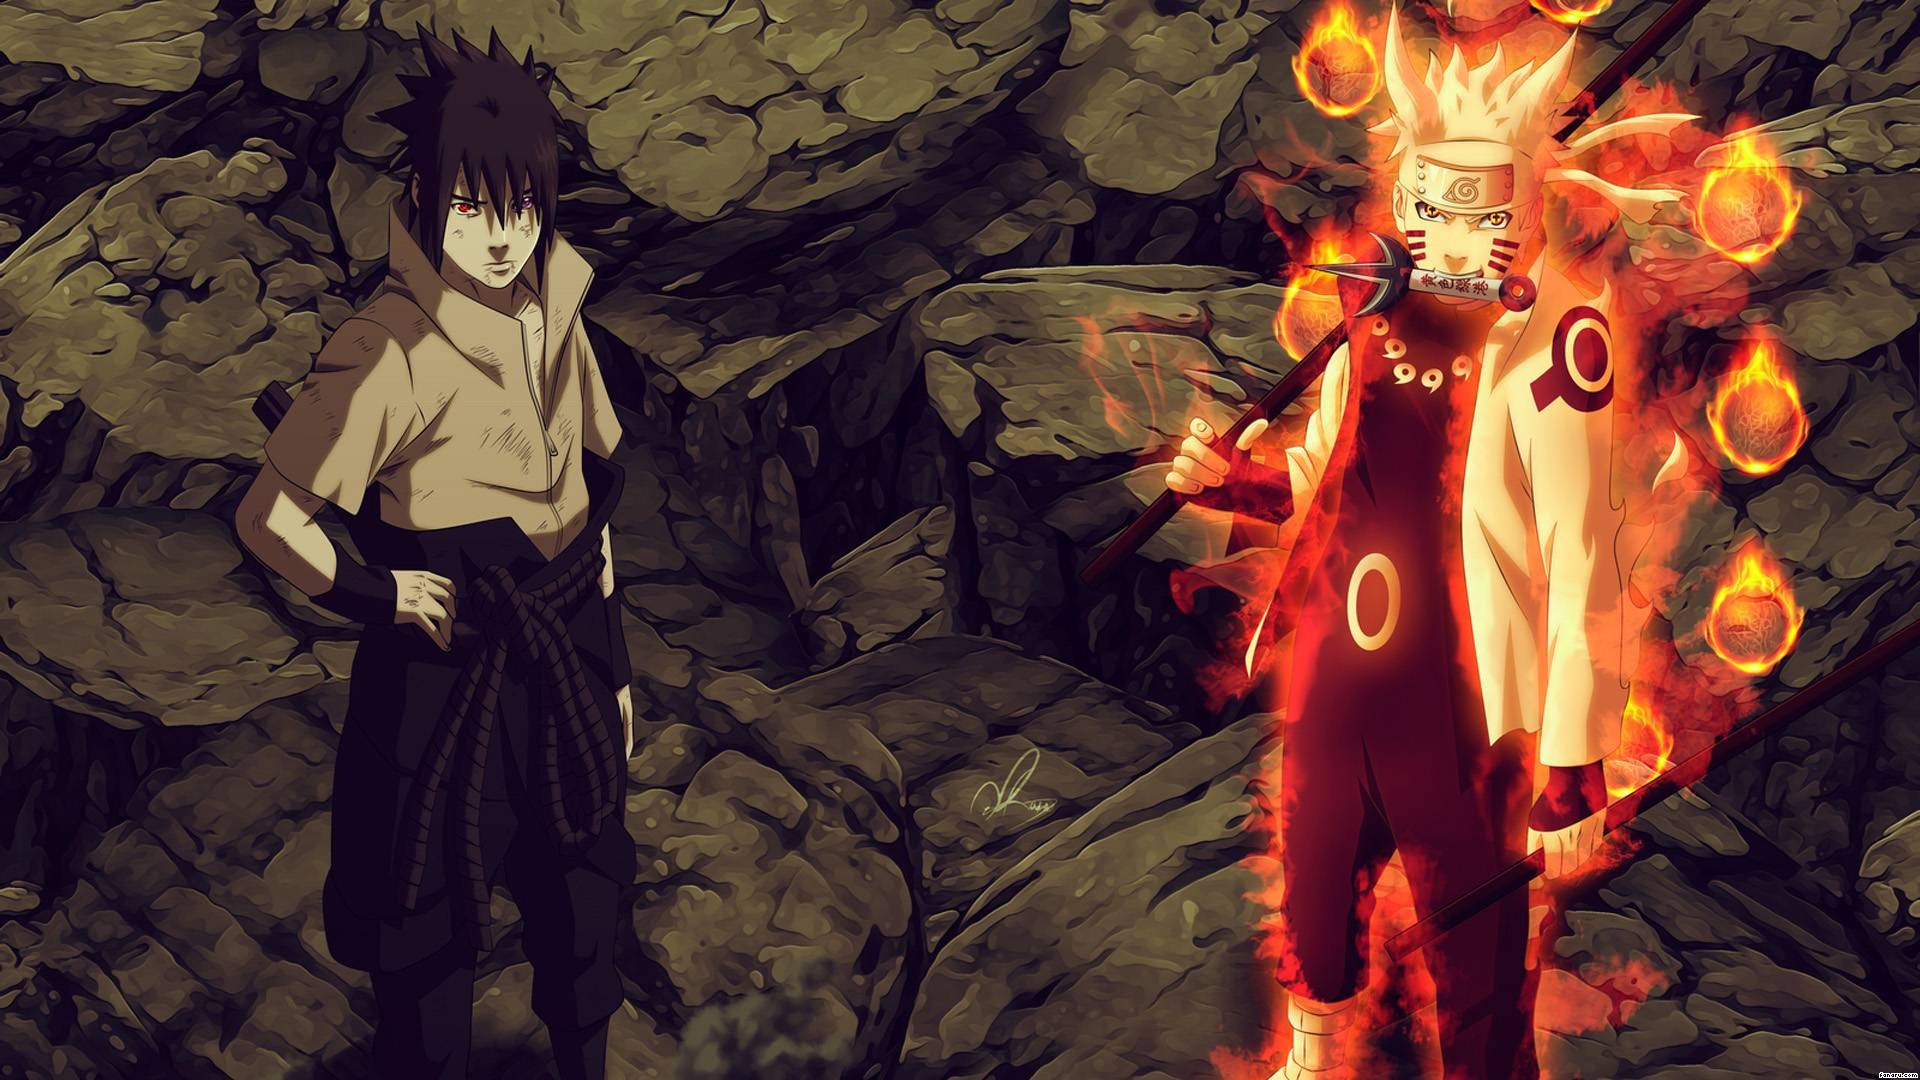 Download Wallpaper Naruto Tablet - Naruto-Sasuke-Wallpapers-003  Pictures.jpg